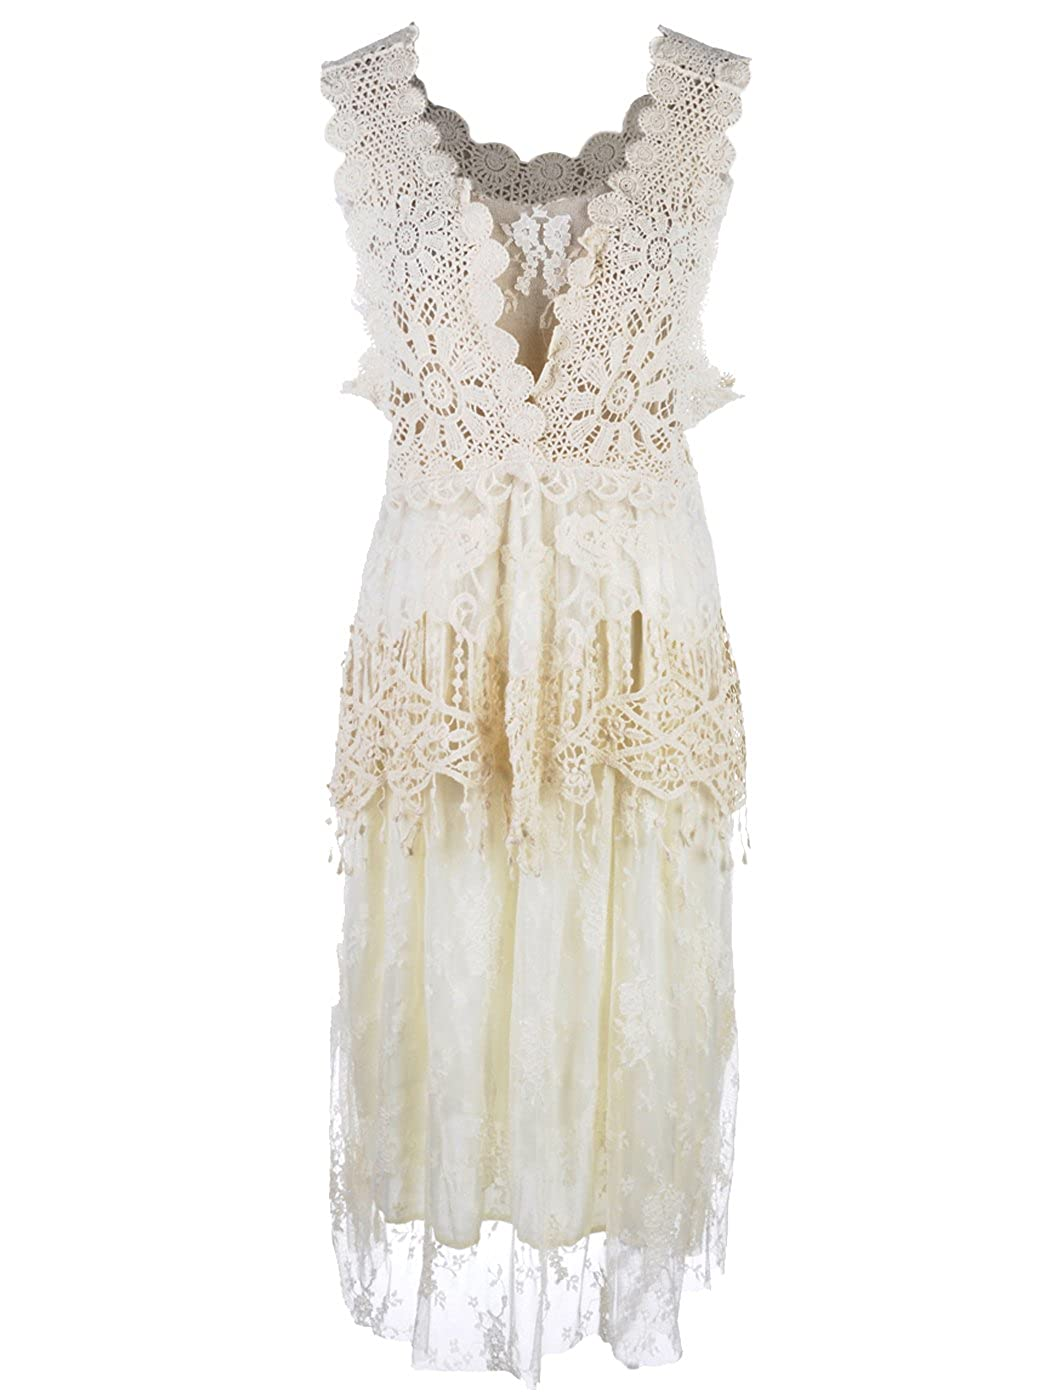 History of 1920s Day Dresses – Shop Day Dresses Anna-Kaci Womens Vintage Granny Influence Embroidery Detail Lace Ruffle Dress $47.90 AT vintagedancer.com